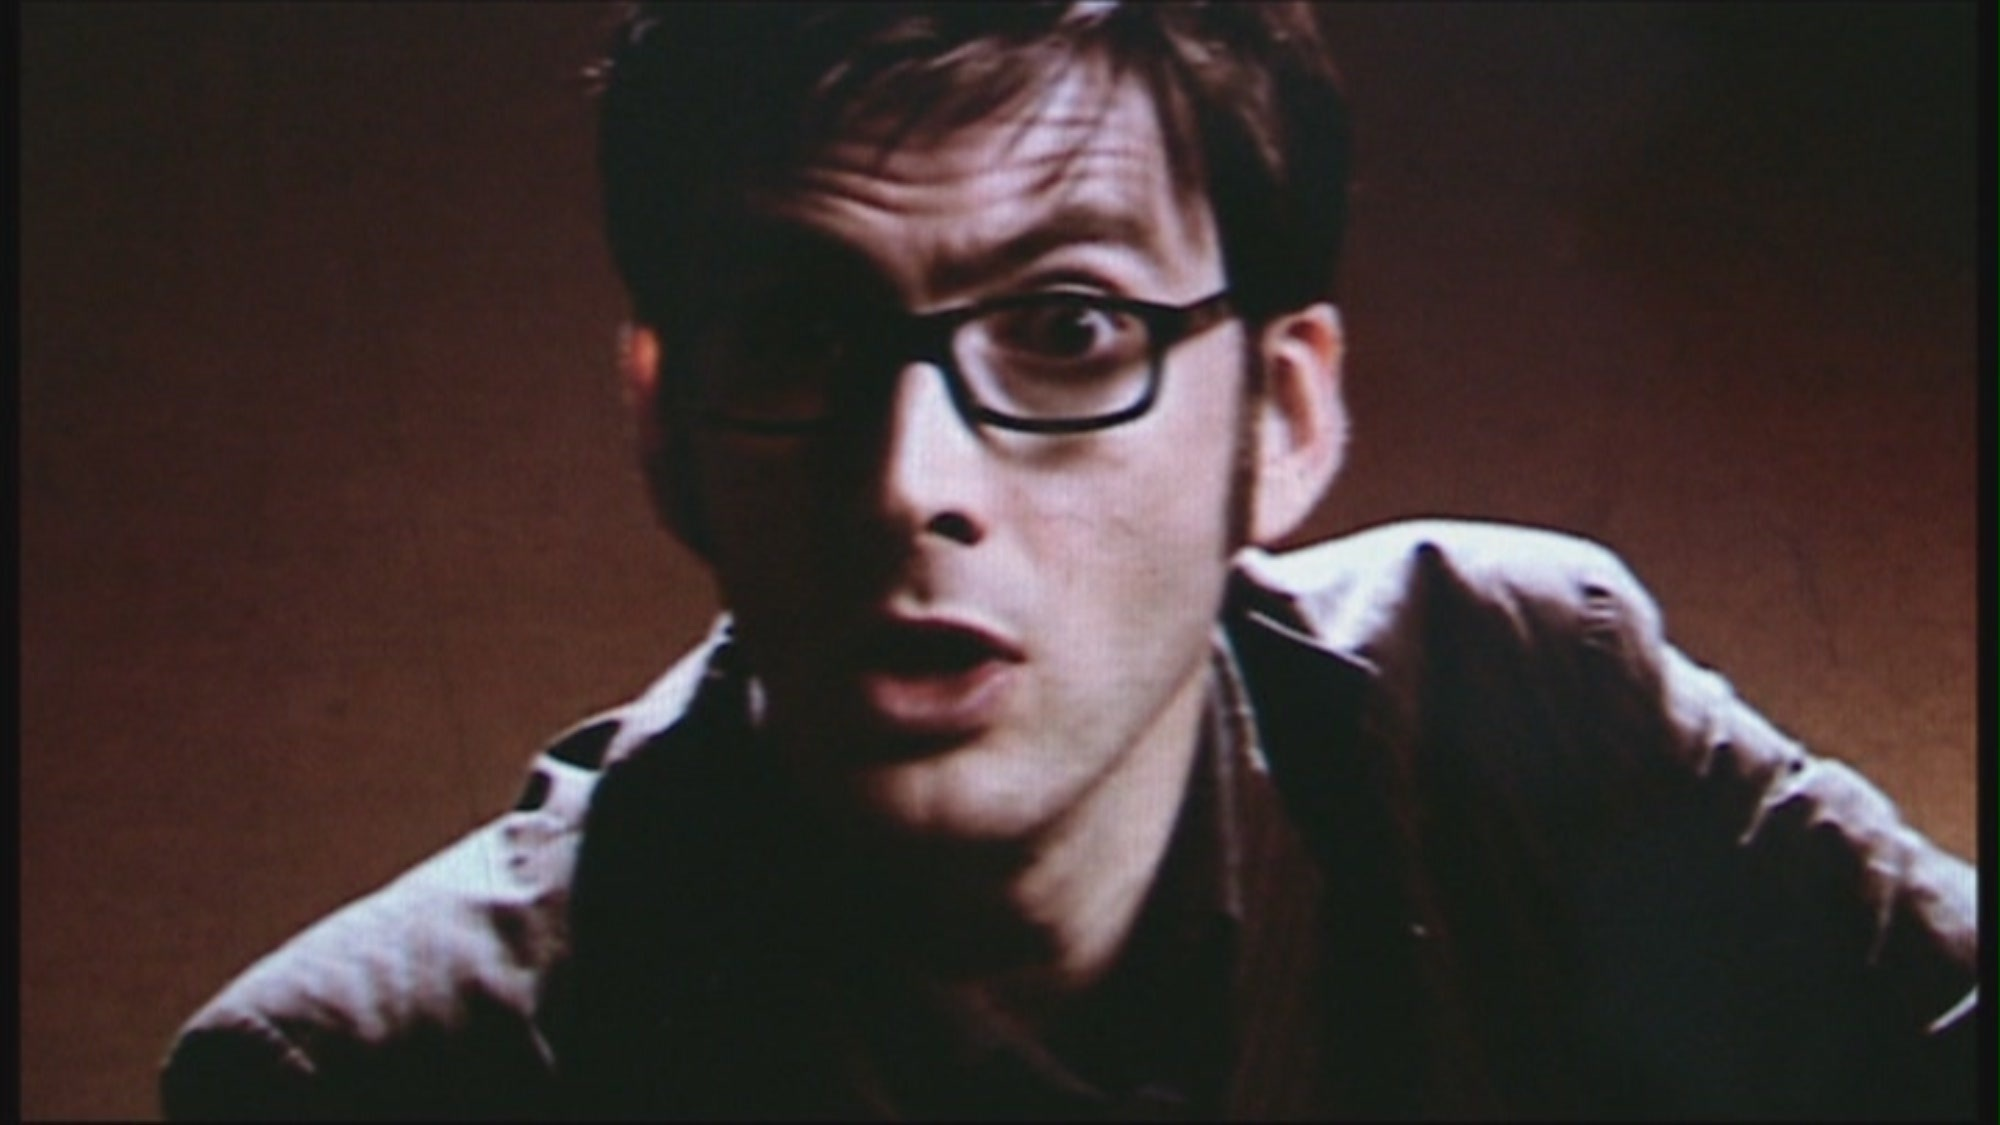 http://images5.fanpop.com/image/photos/26400000/3-10-Blink-the-tenth-doctor-26450997-2000-1125.jpg